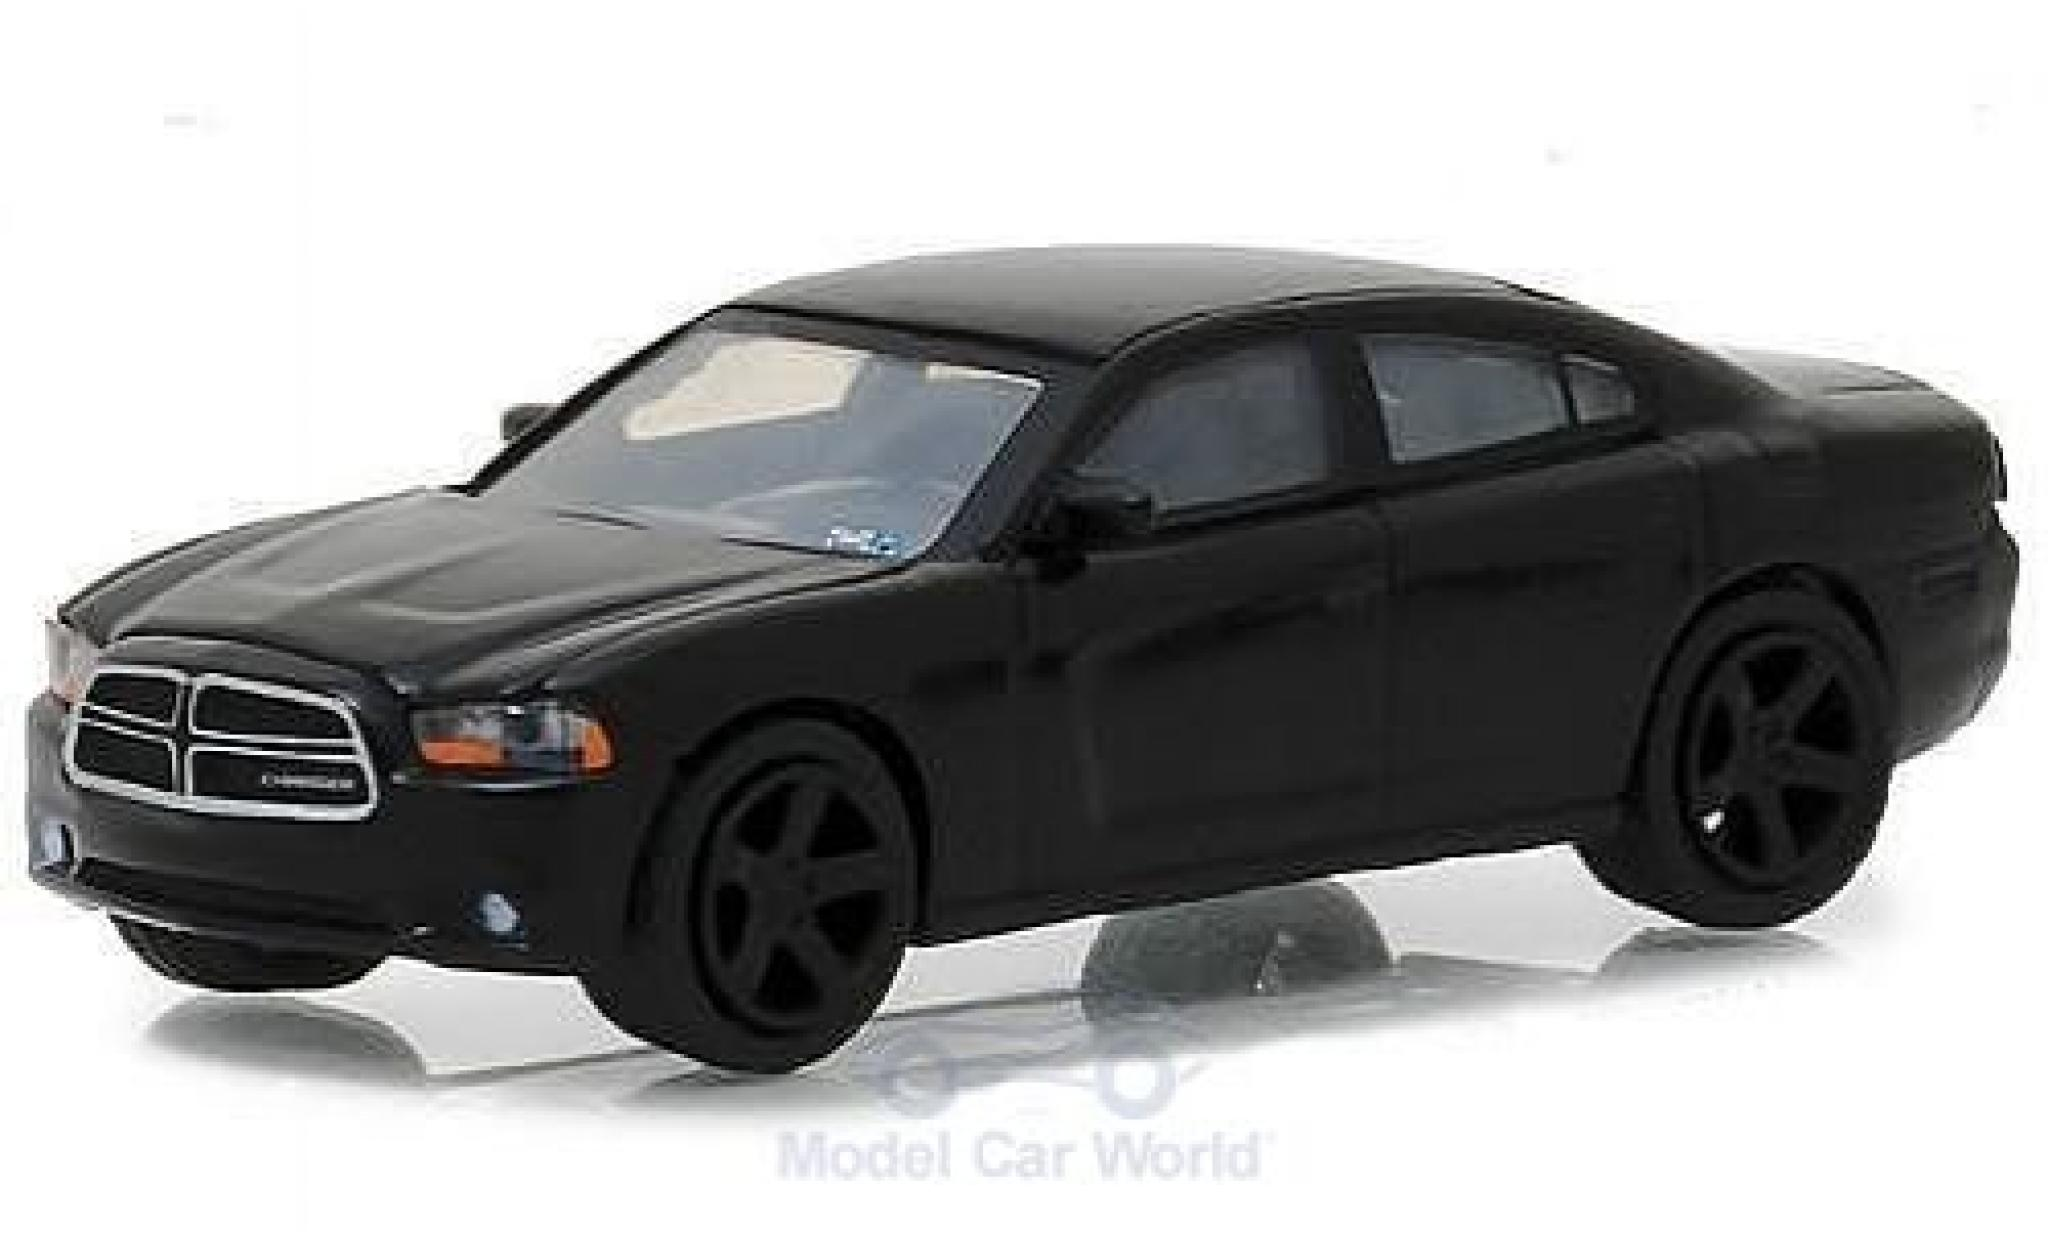 Dodge Charger 1/64 Greenlight noire Film John Wick 2011